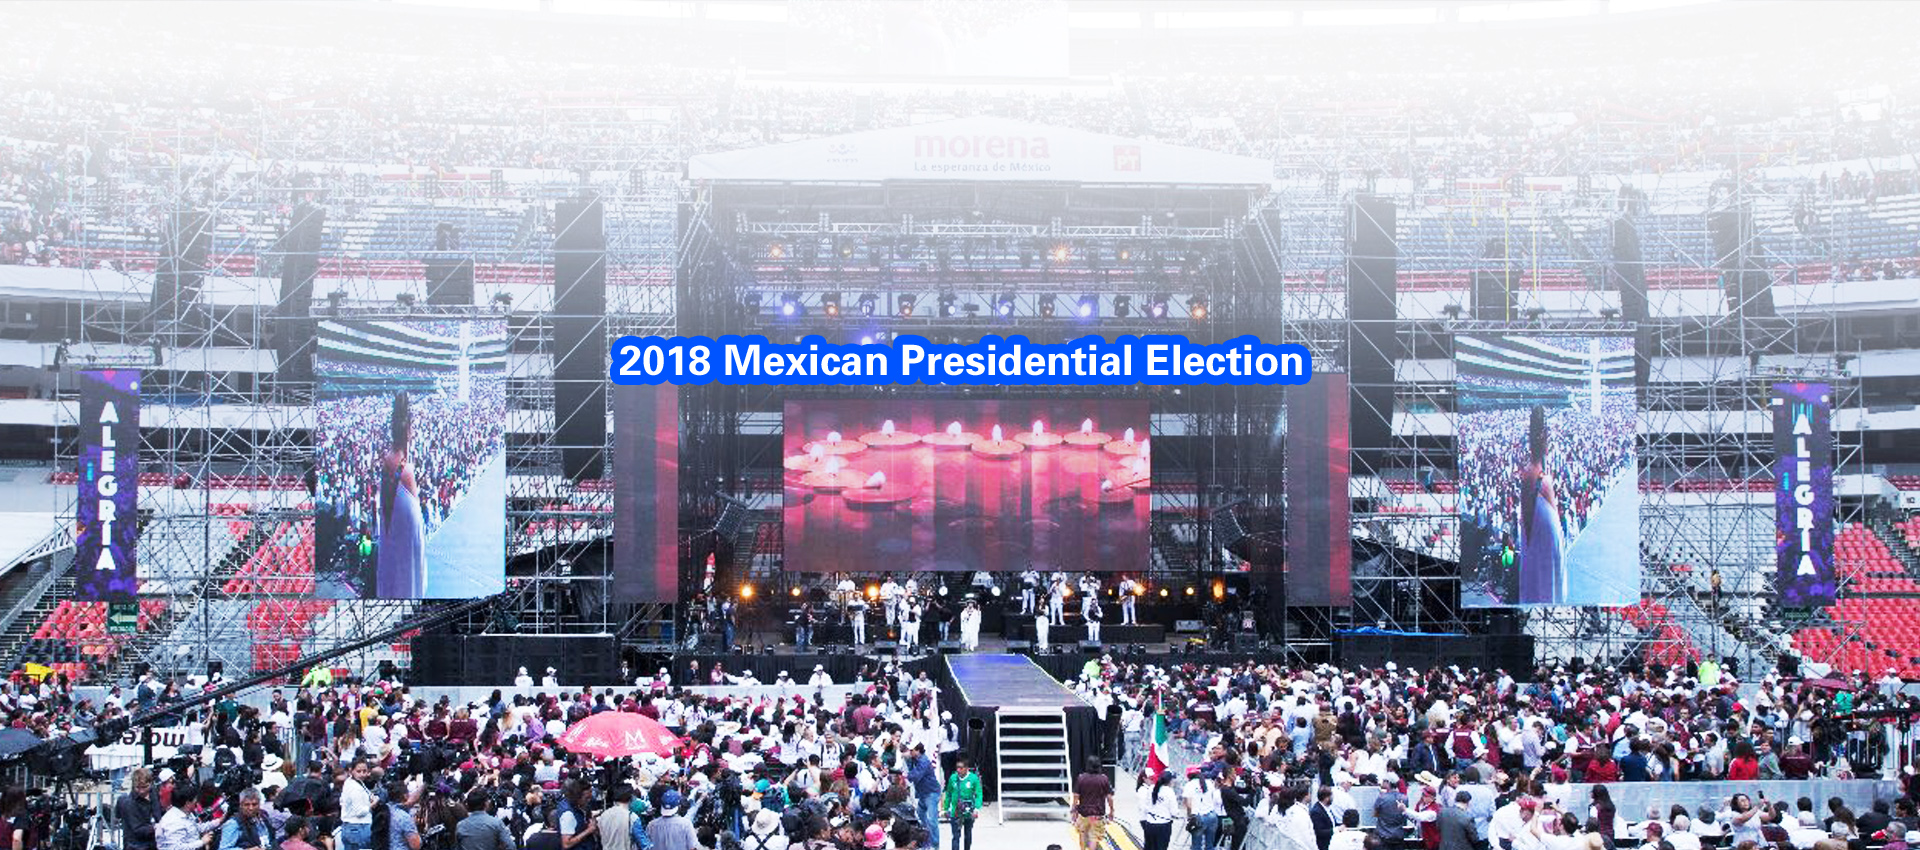 Mexican Precident Election